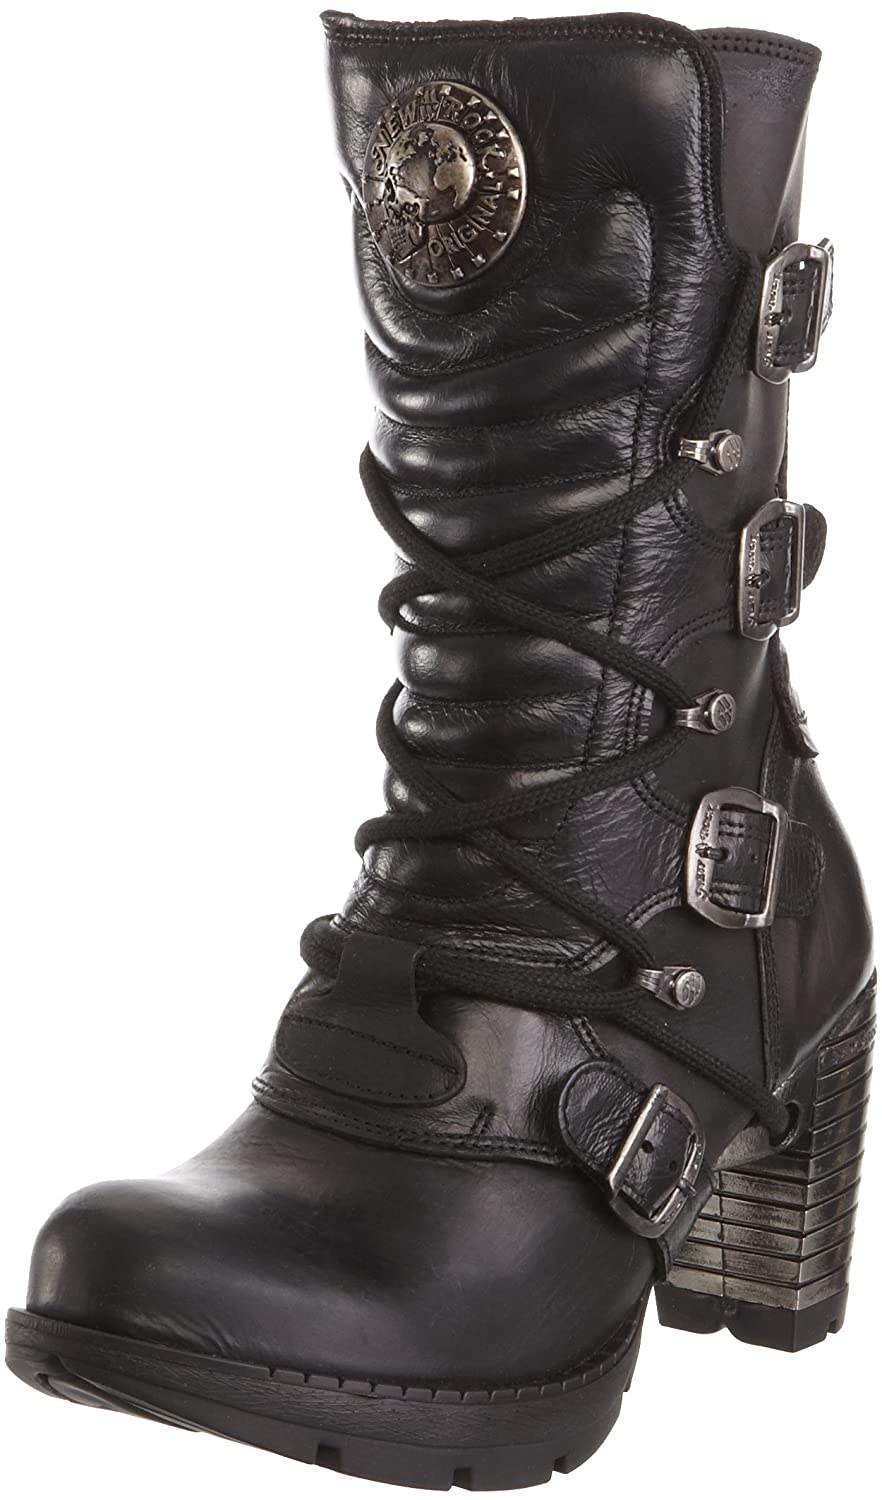 New Rock Womens M TR003 Gothic Leather Boots B004P5O5AW 41 M EU Black